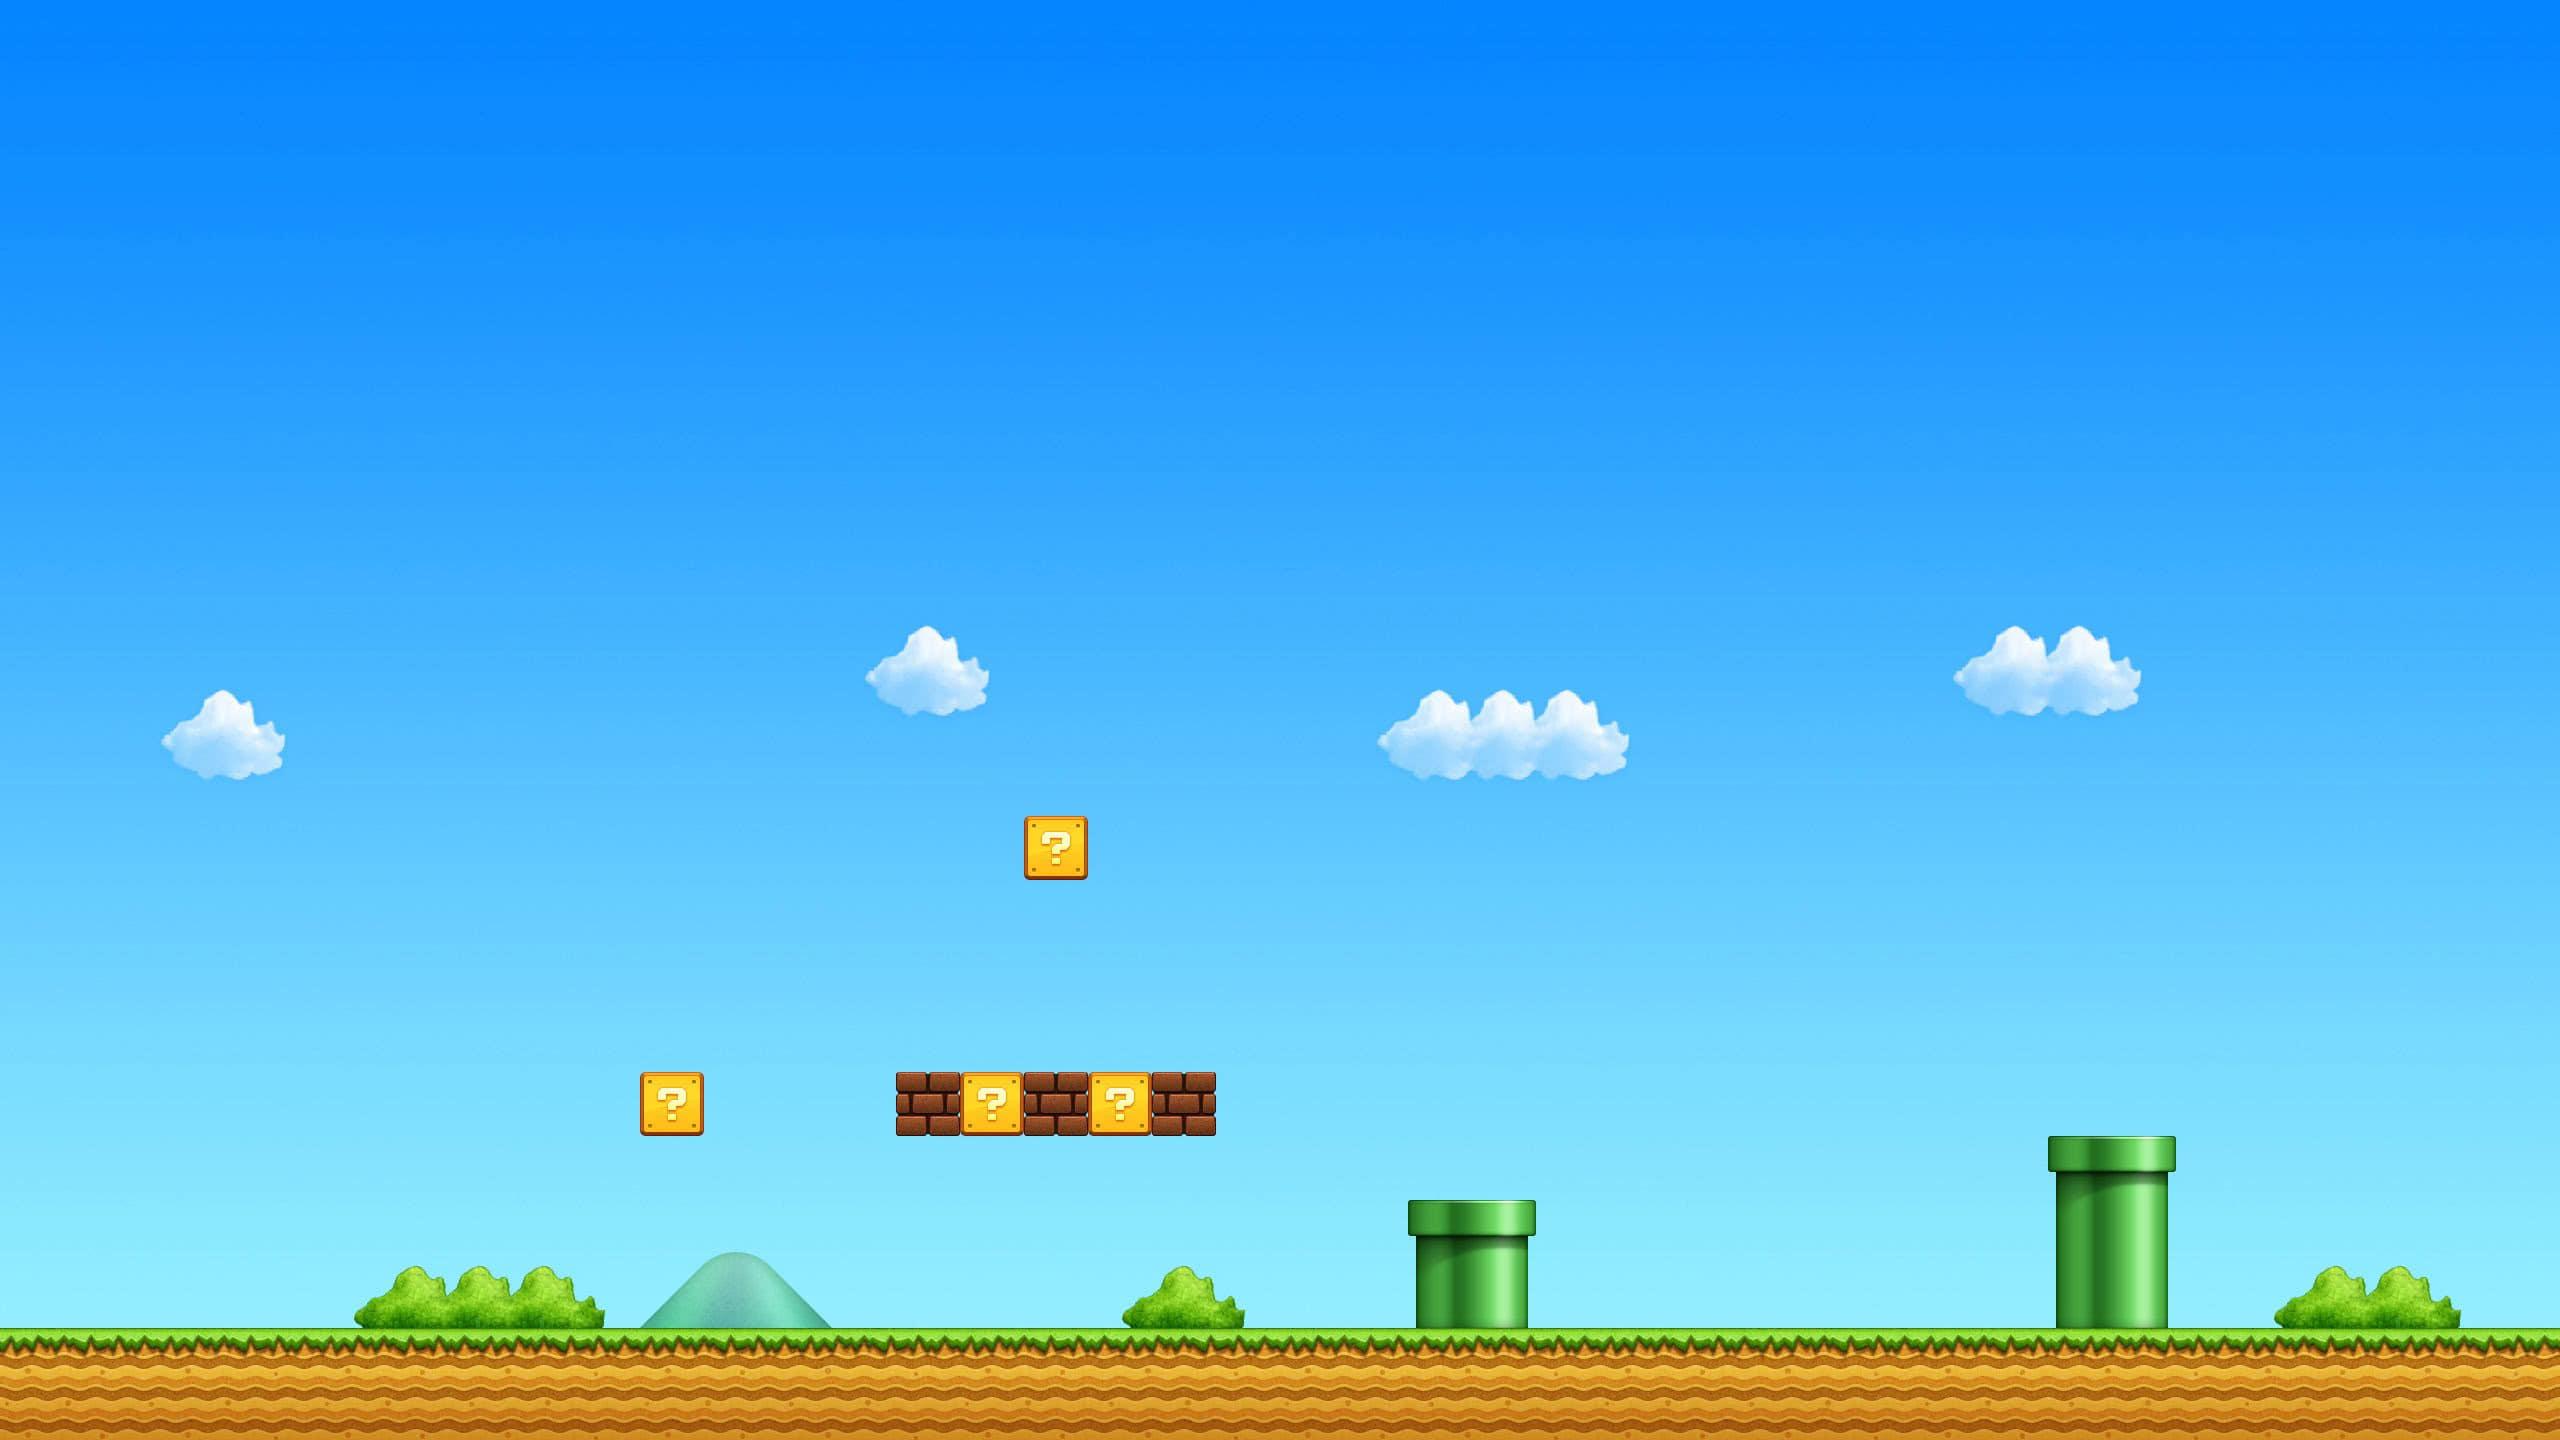 mario background wqhd 1440p wallpaper